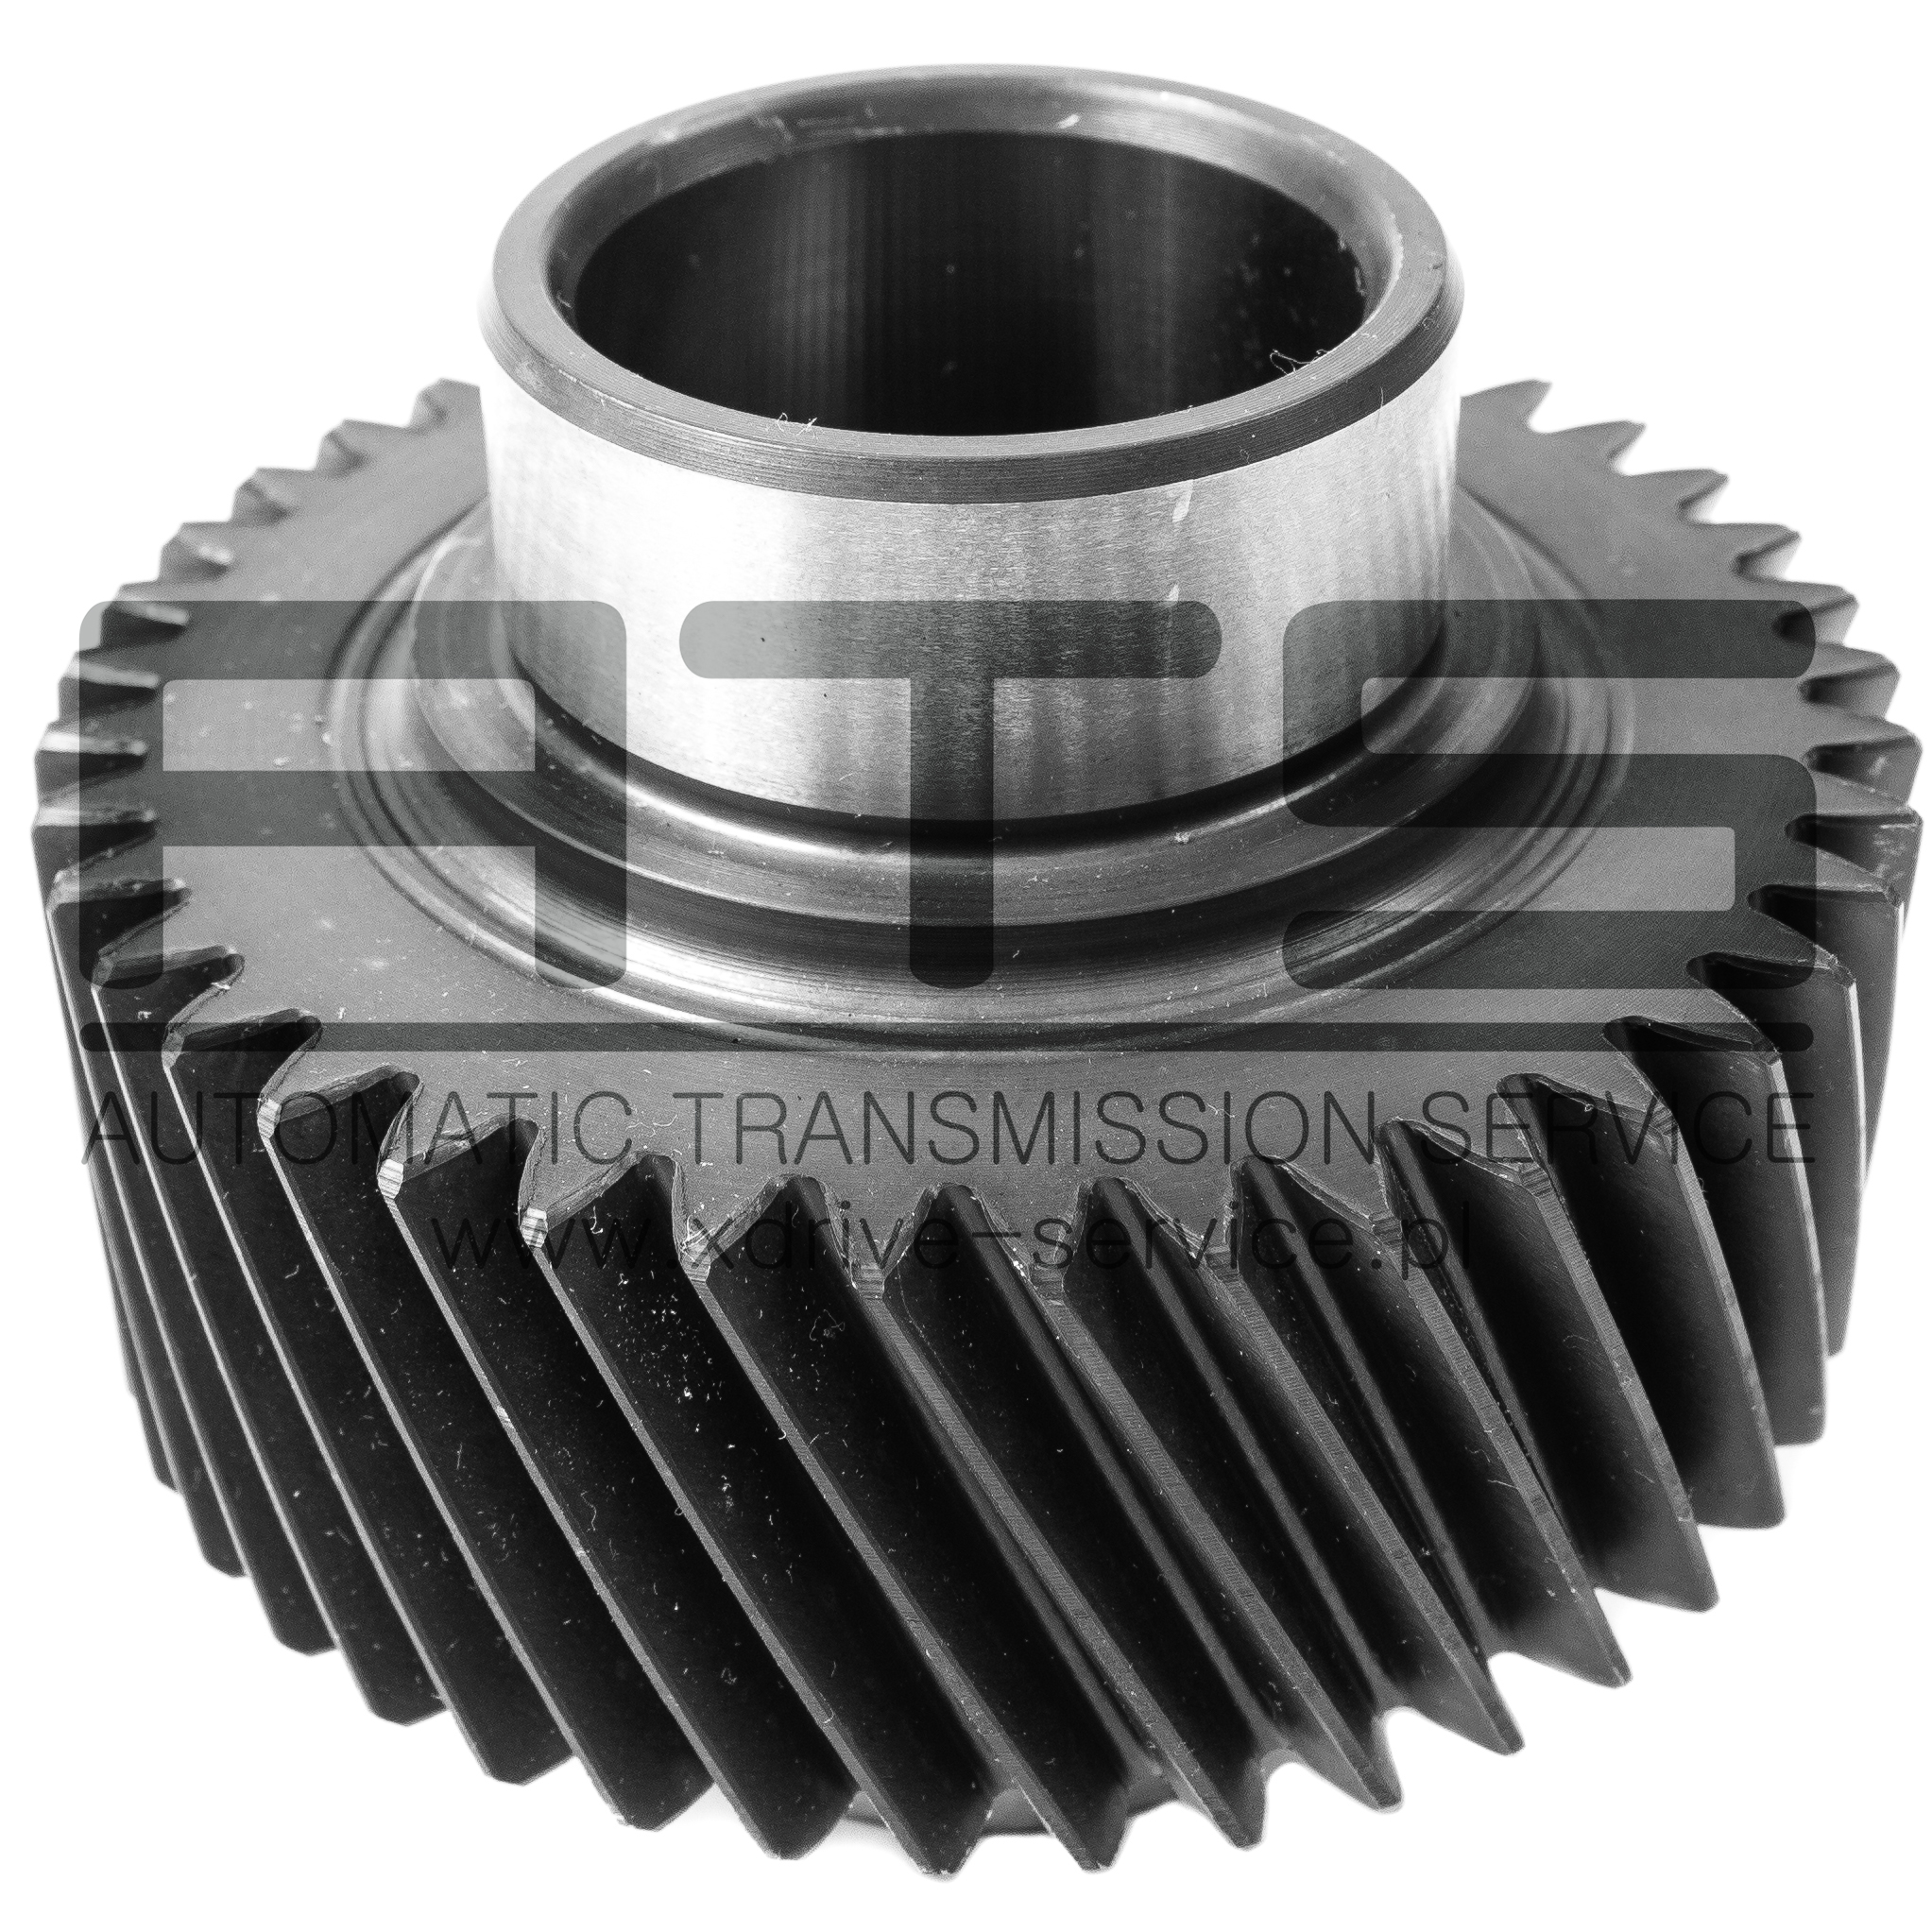 Bmw Xdrive Transfer Case: Small Gear For Transfer Case ATC300 BMW E60, E90